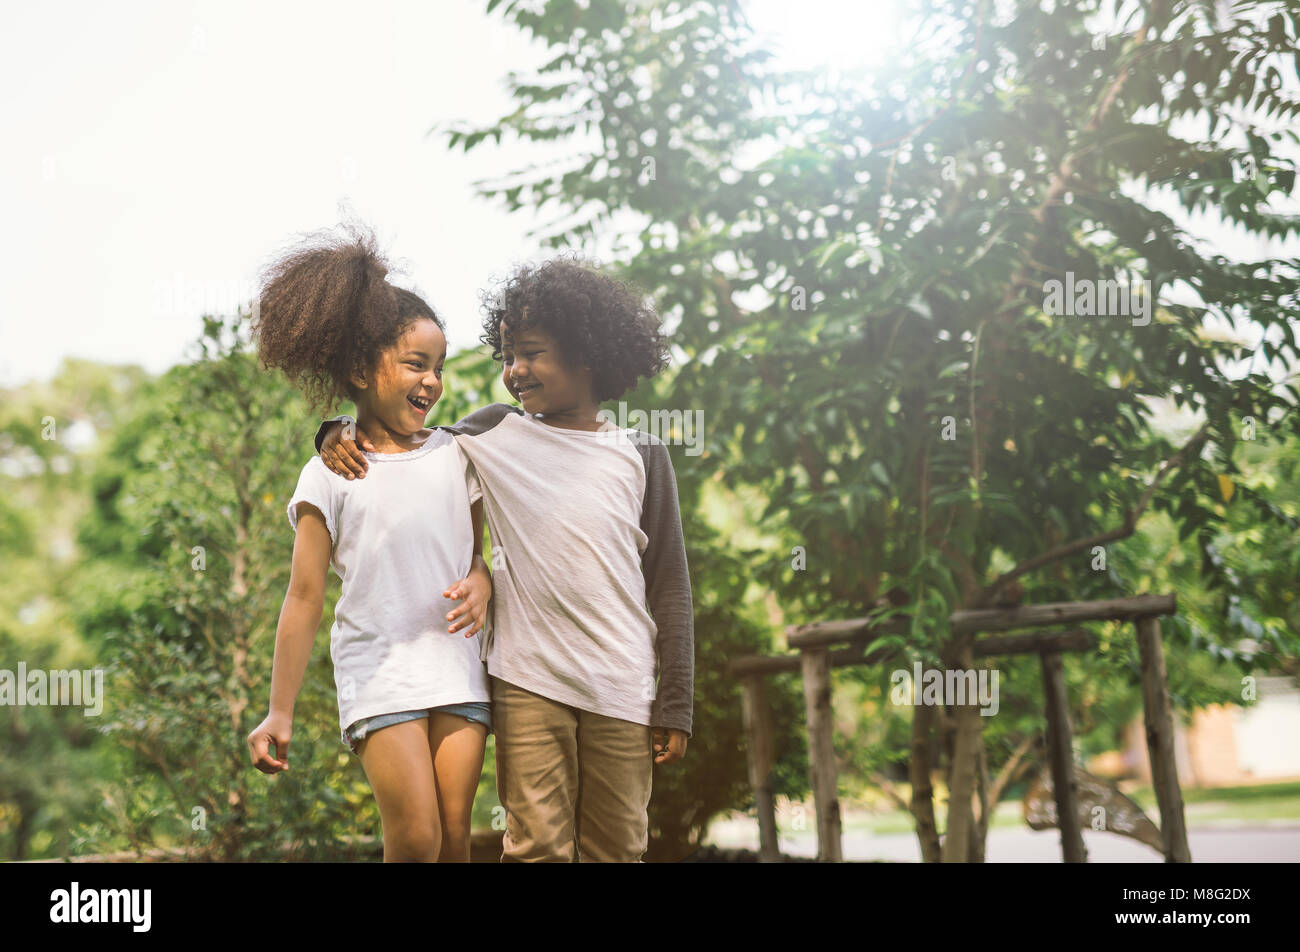 Amitié Solidarité enfants Smiling Bonheur Concept.Cute african american boy and girl s'embrassent Photo Stock